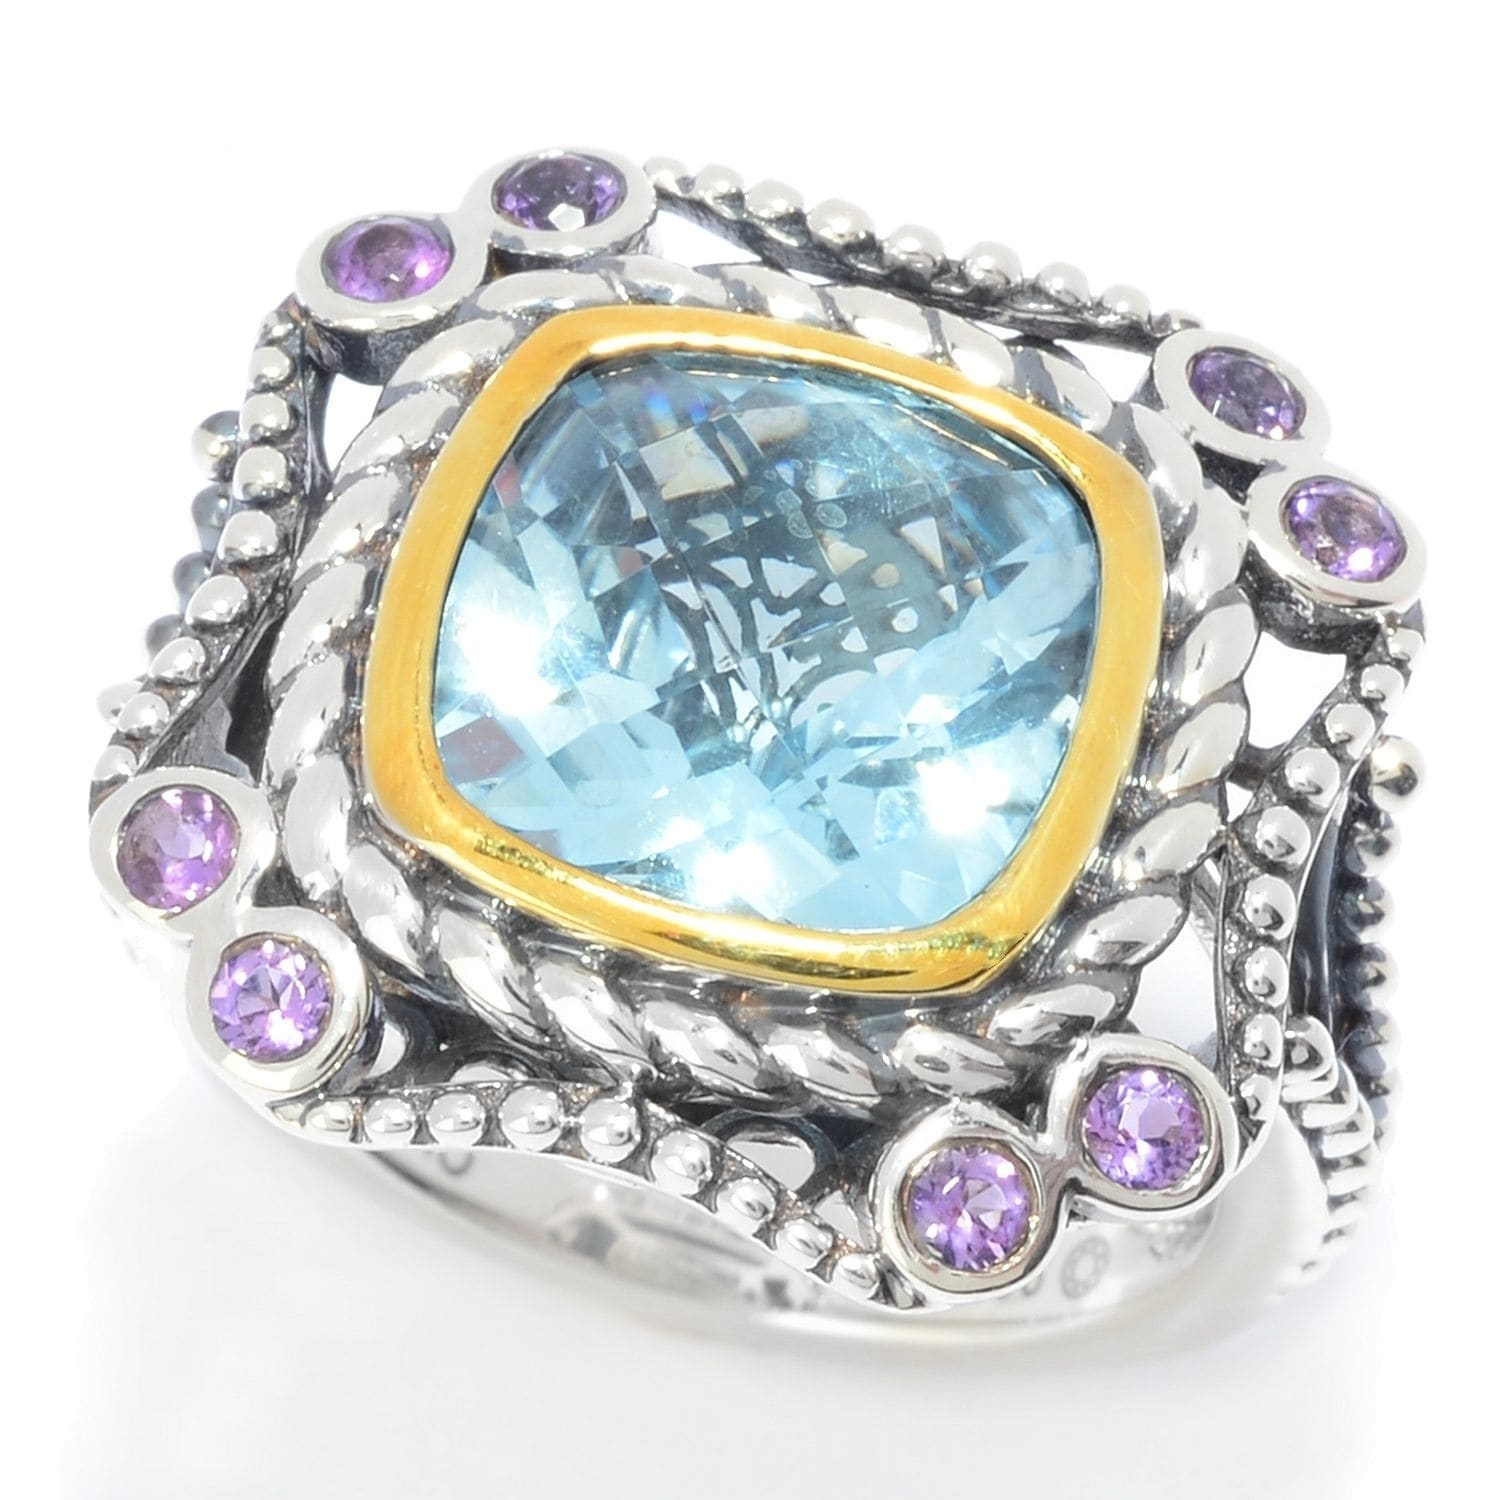 ed12534bee Pinctore Sterling Silver 10mm Cushion Shaped Sky Blue Topaz Textured Ring